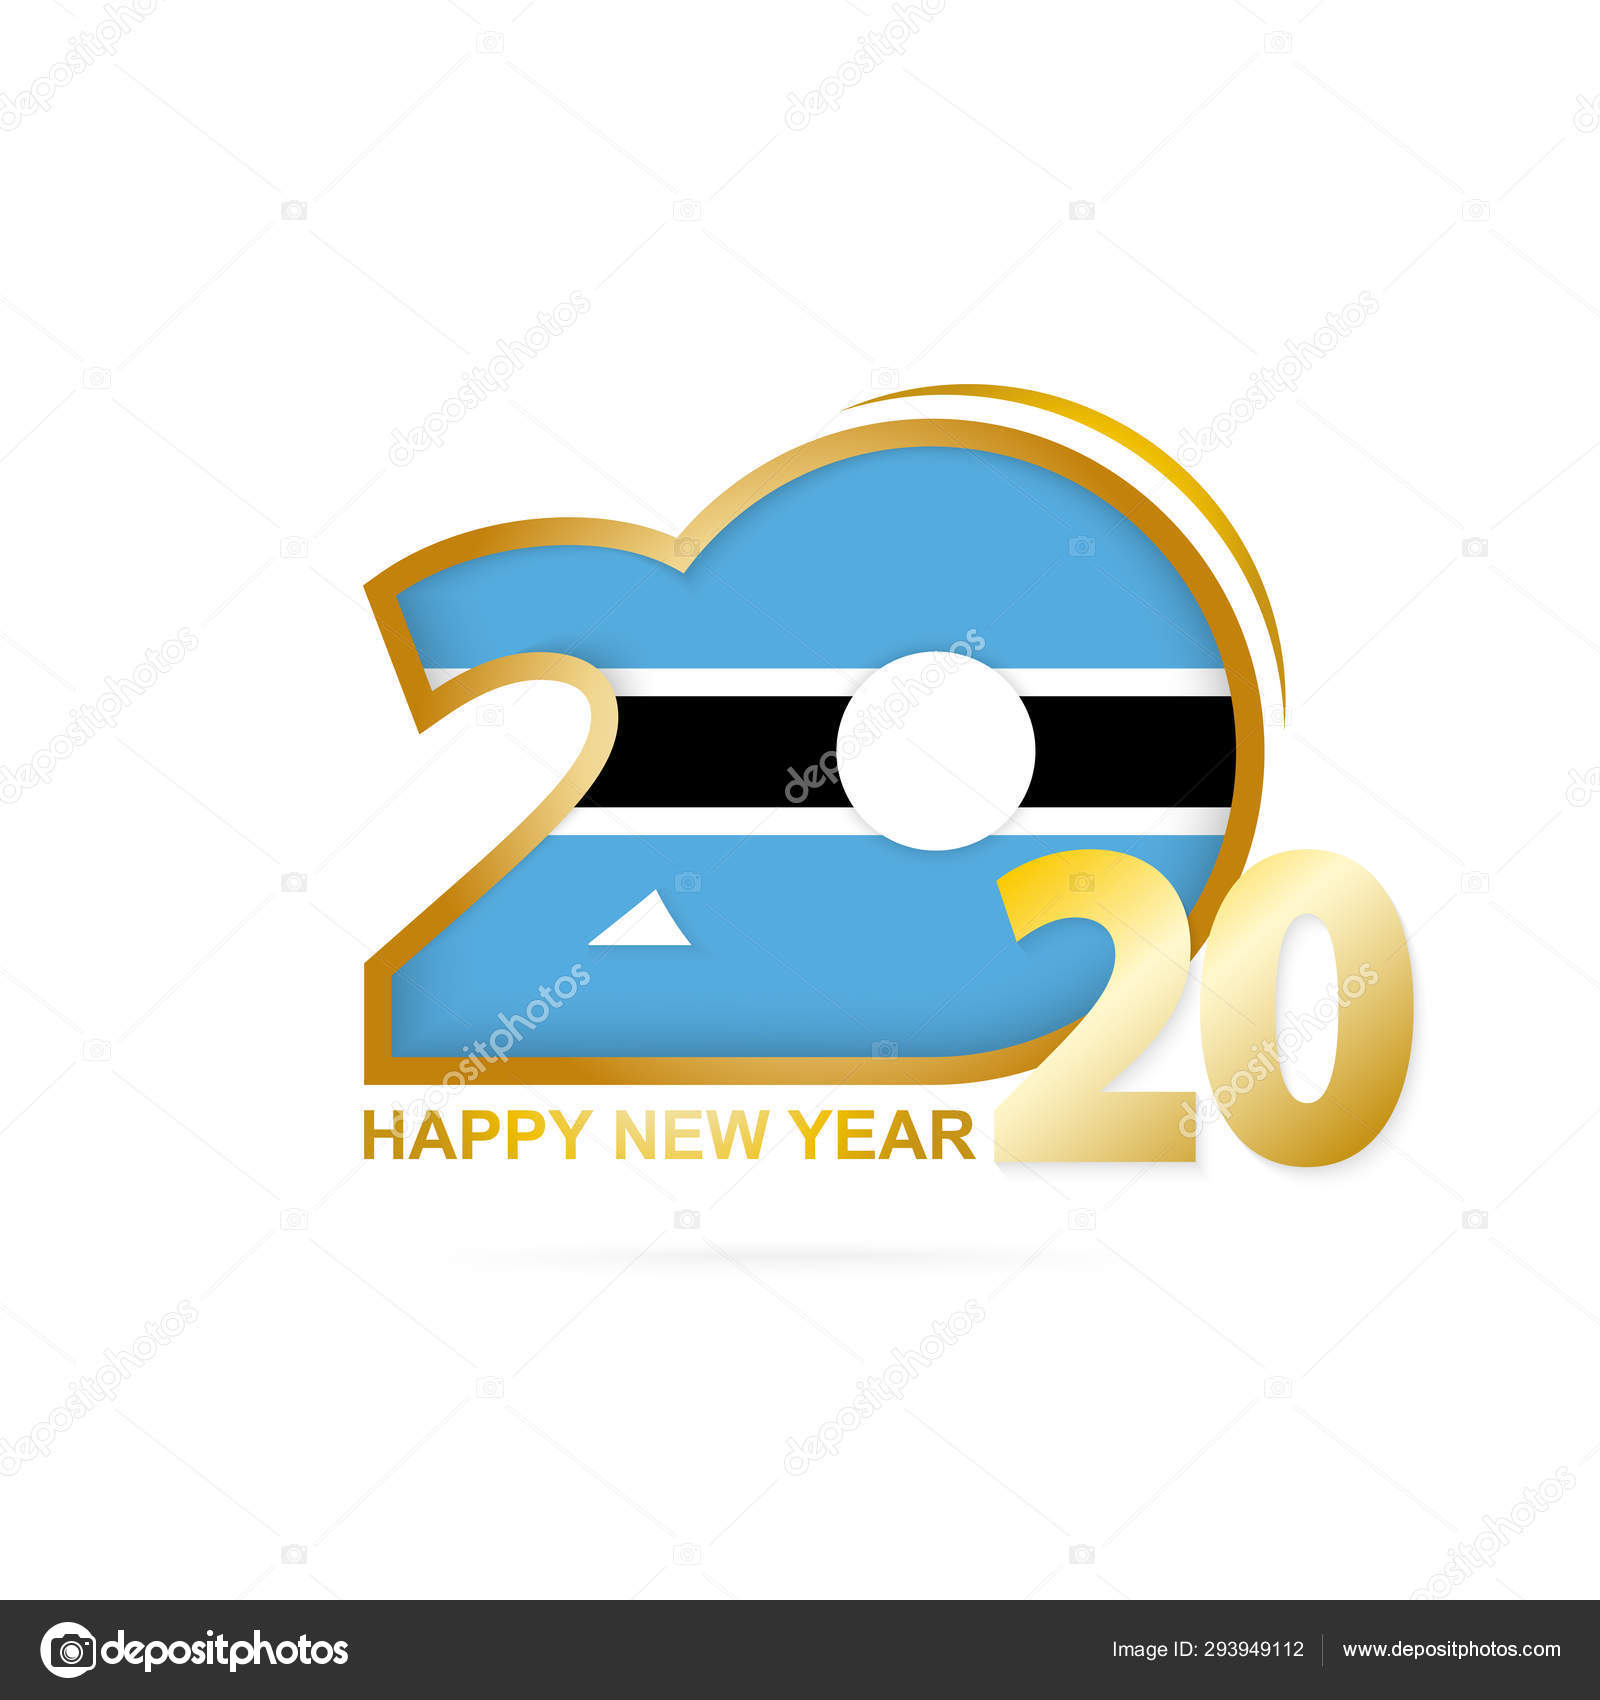 Year 2020 with Botswana Flag pattern  Happy New Year Design  — Stock